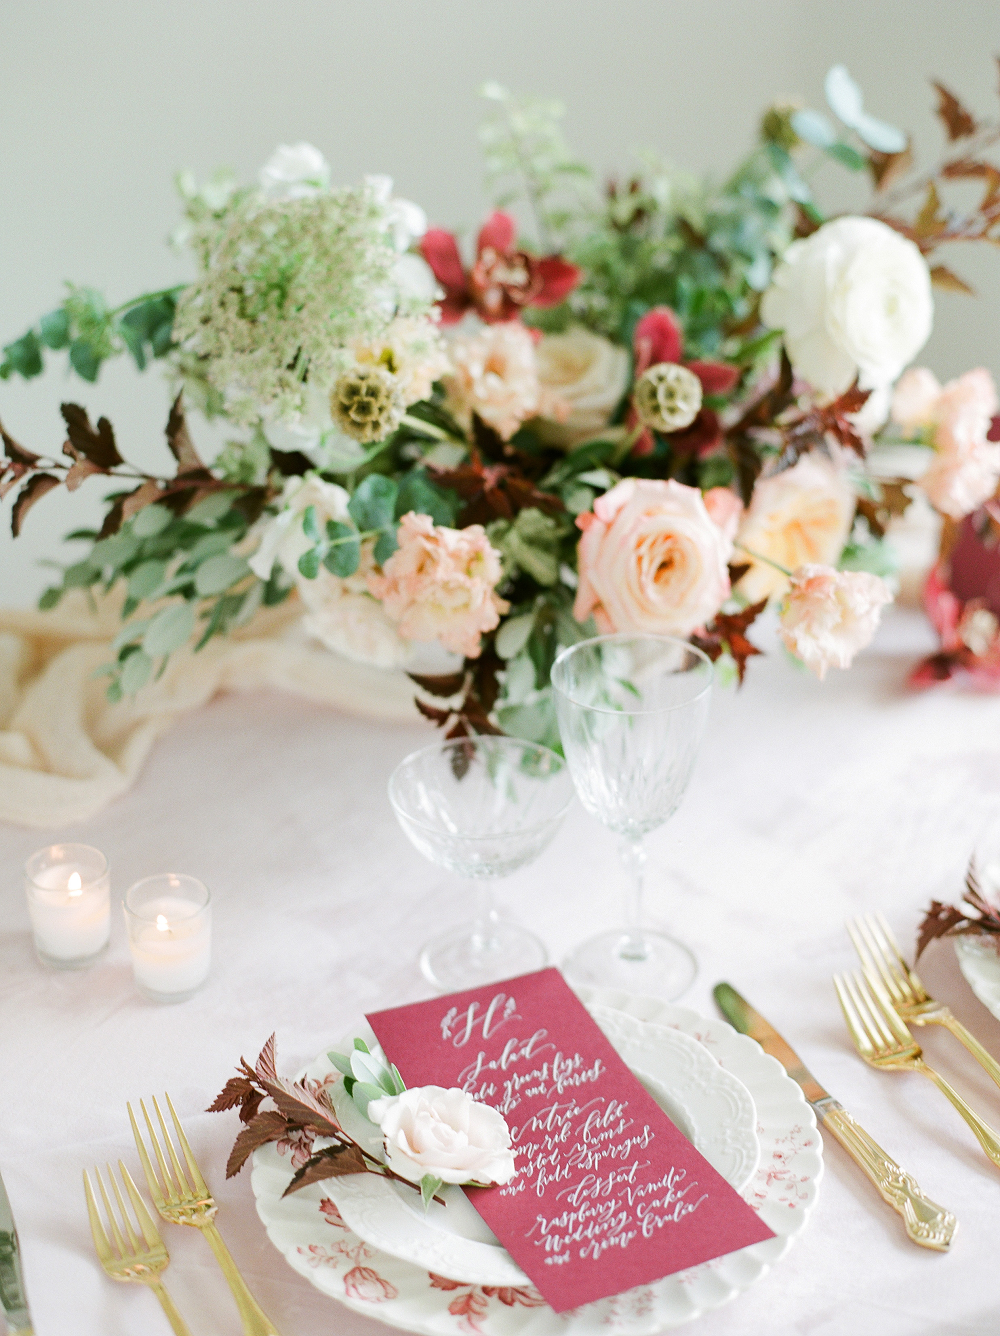 Burgundy and Blush Wedding Inspiration Styled Shoot Floral Centerpiece